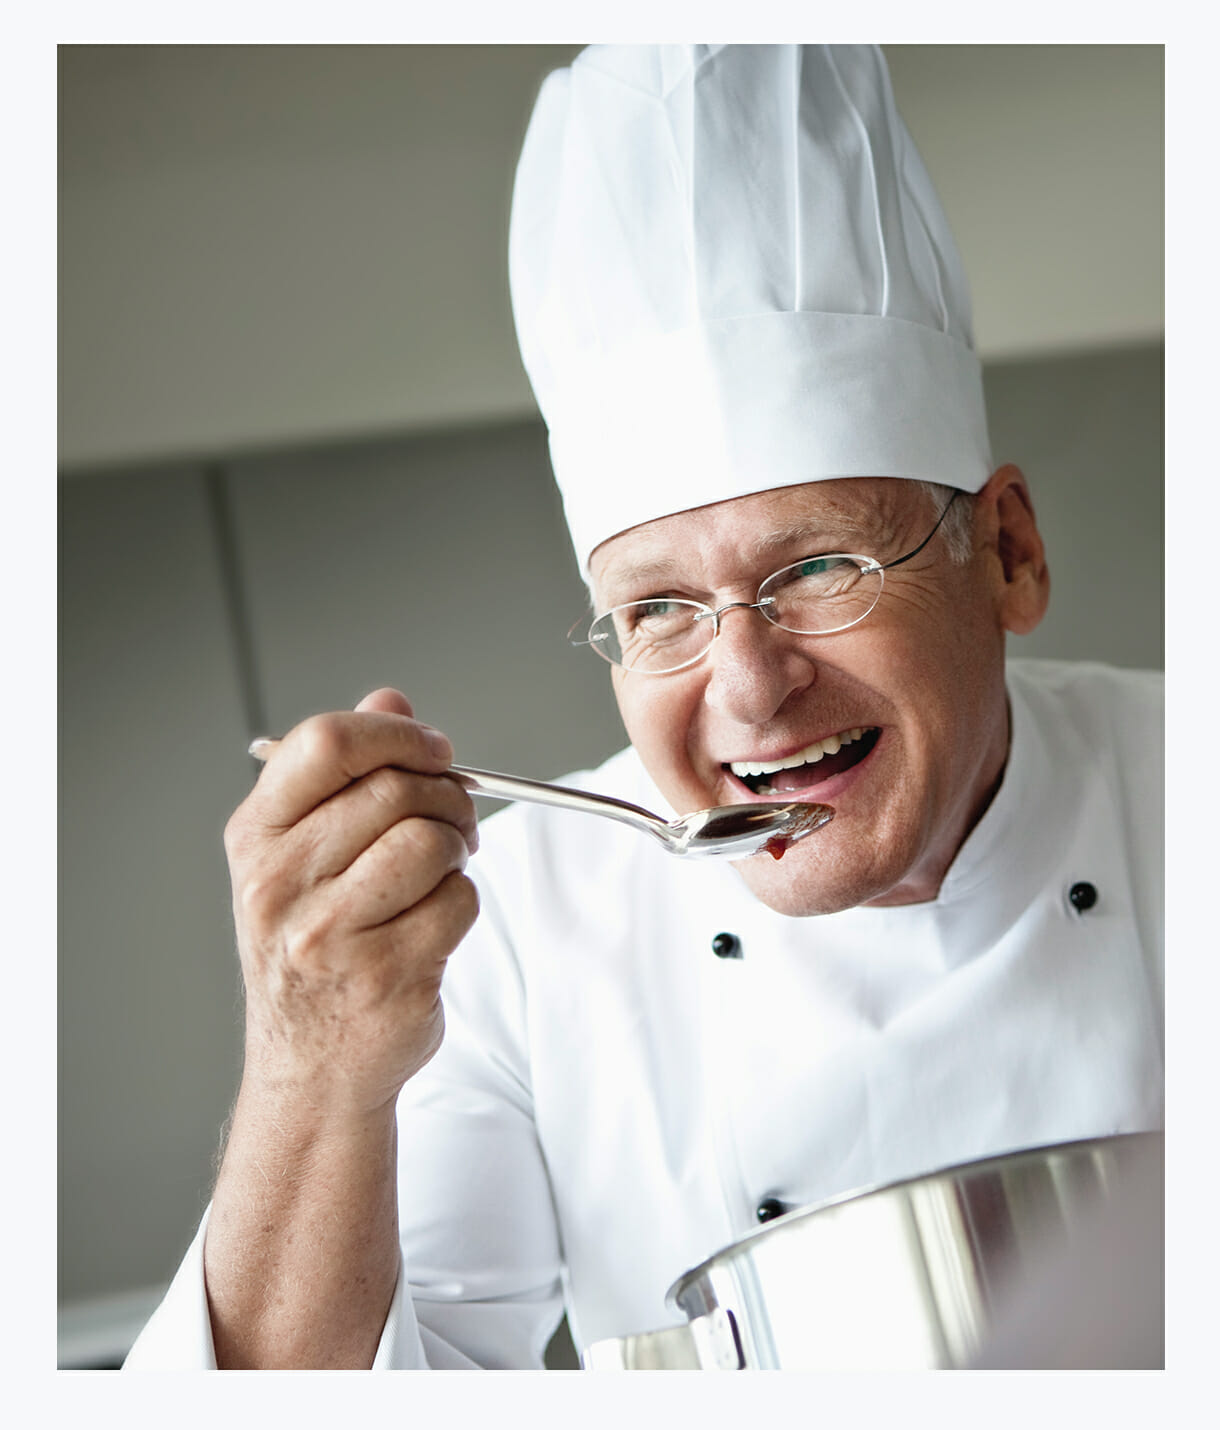 Memory Care Assisted Living private chef with open private kitchen, preparing meals for Memory Care residents, sensory stimulation, aroma therapy